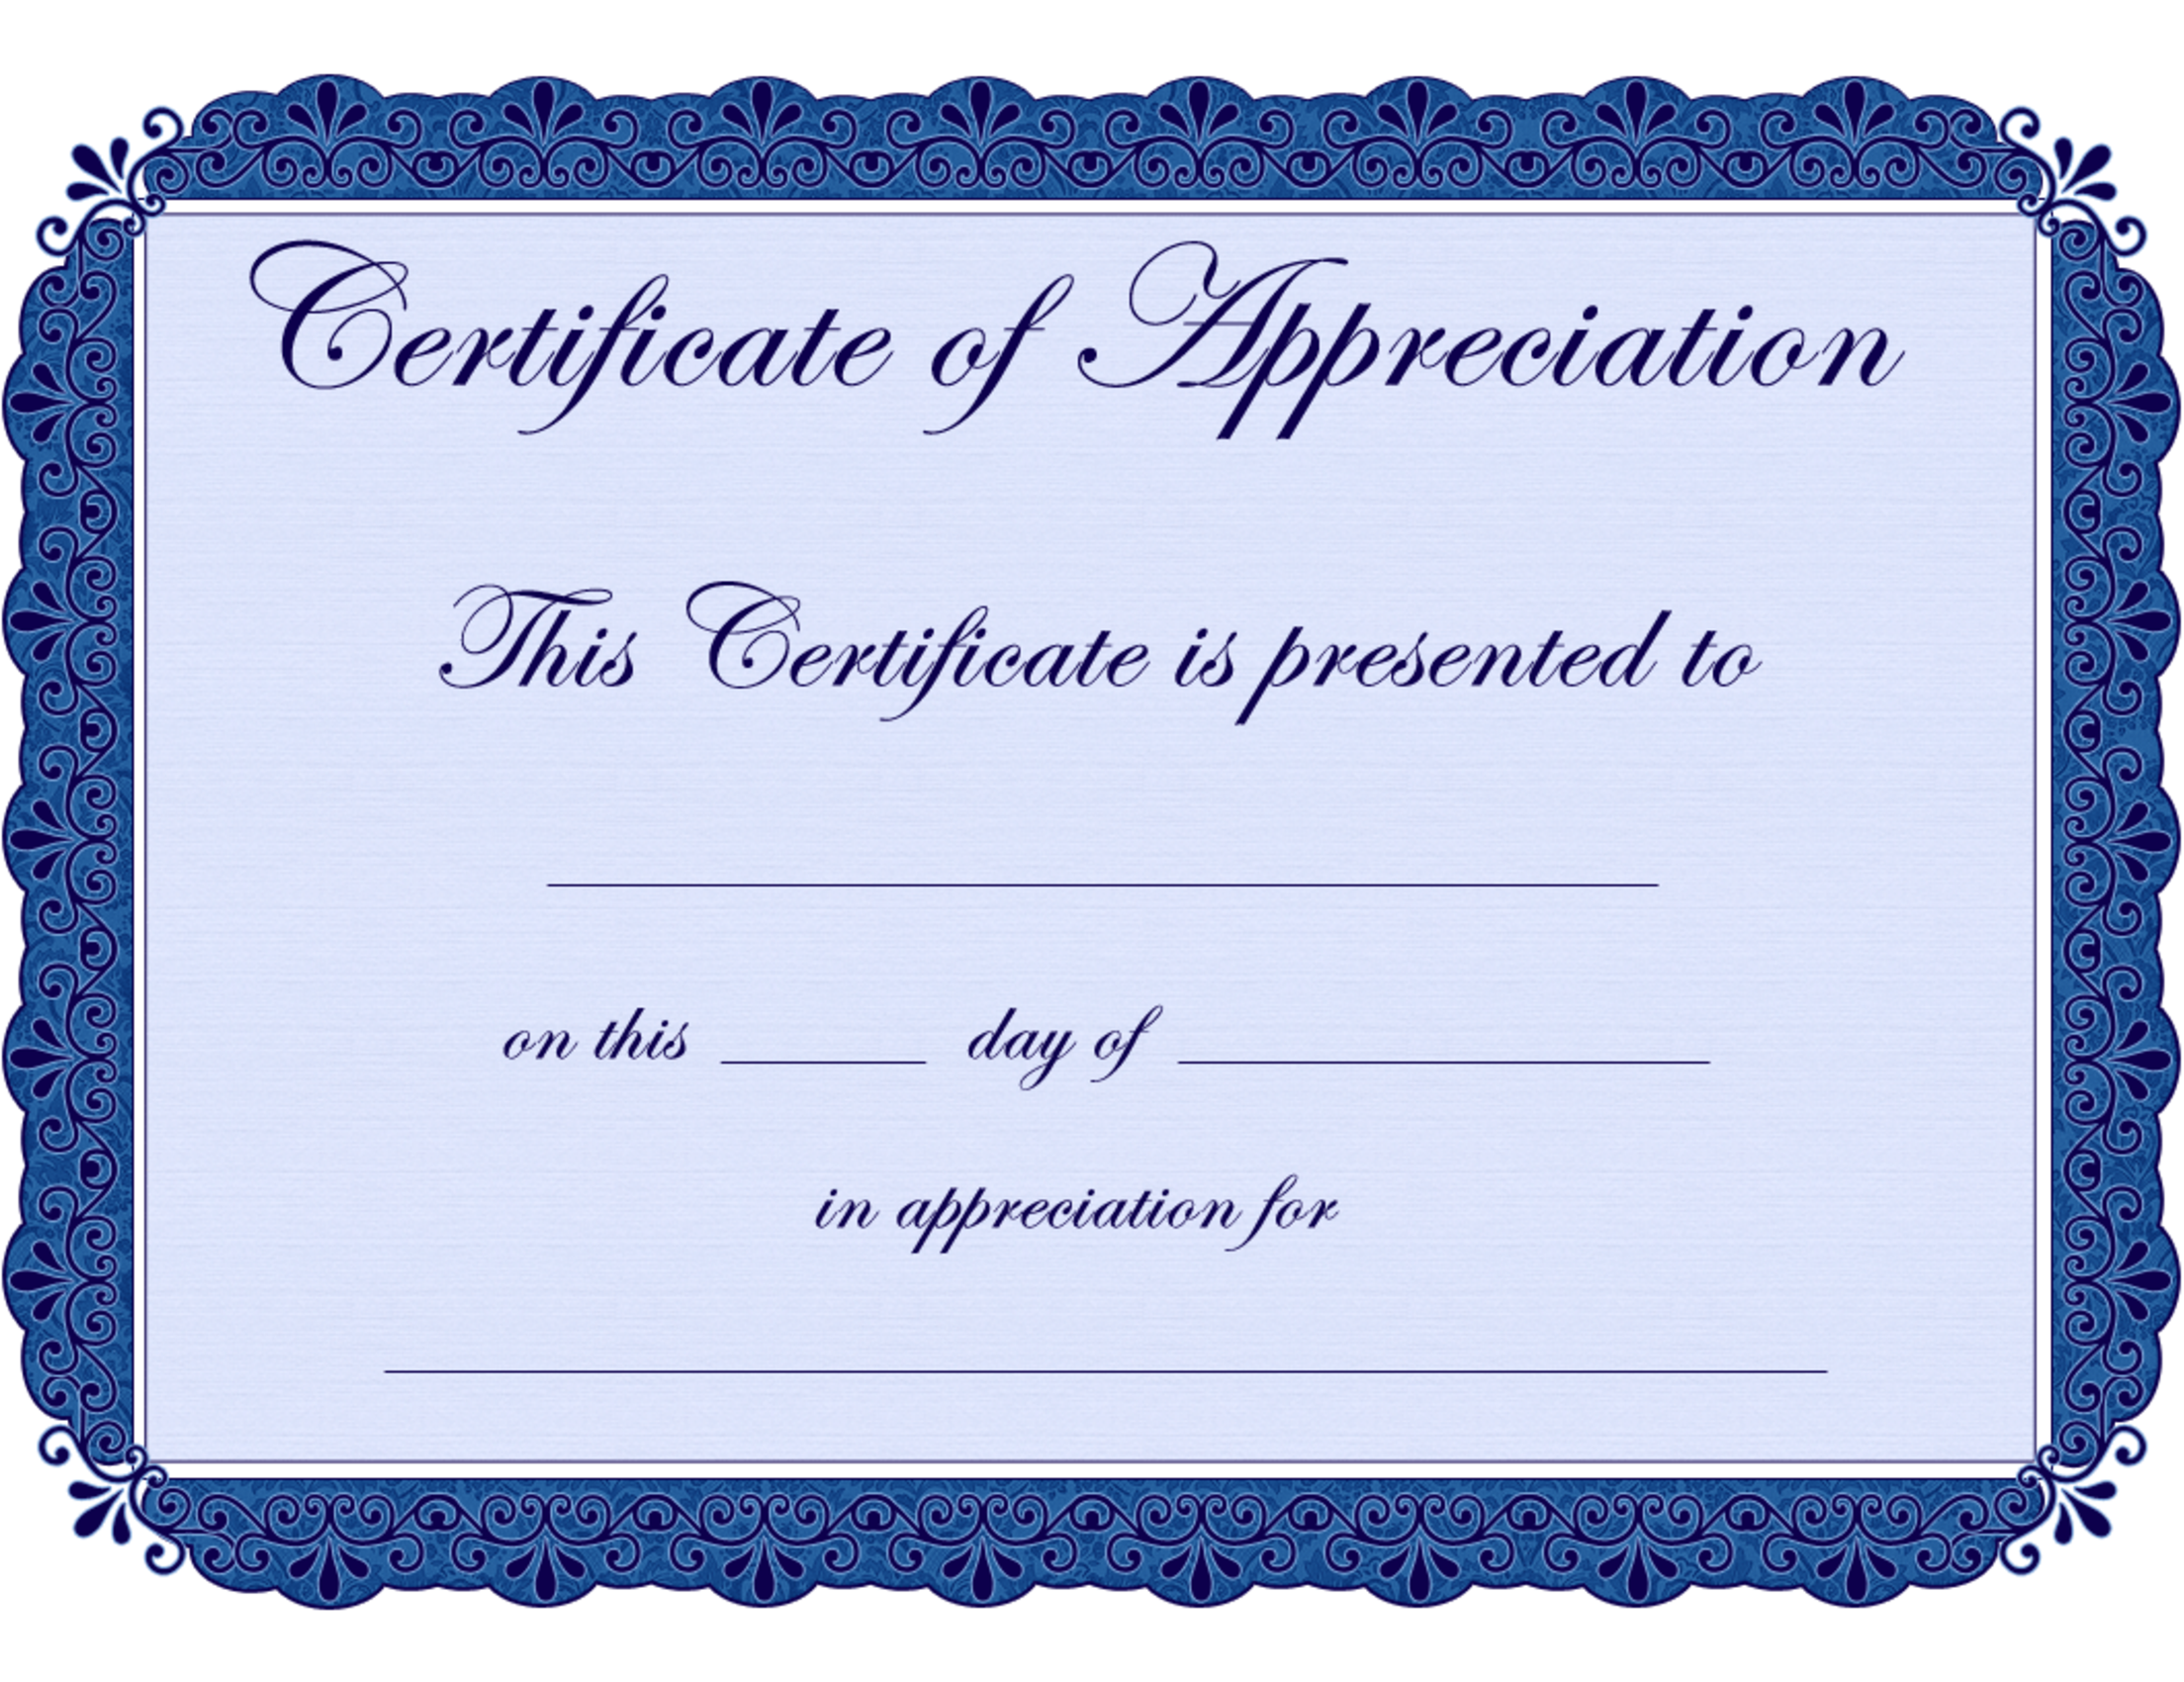 Elegant Free Printable Certificates Certificate Of Appreciation Certificate ... |  Certificate Of Appreciation | Pinterest | Free Printable Certificates, ... Intended For Free Appreciation Certificate Templates For Word